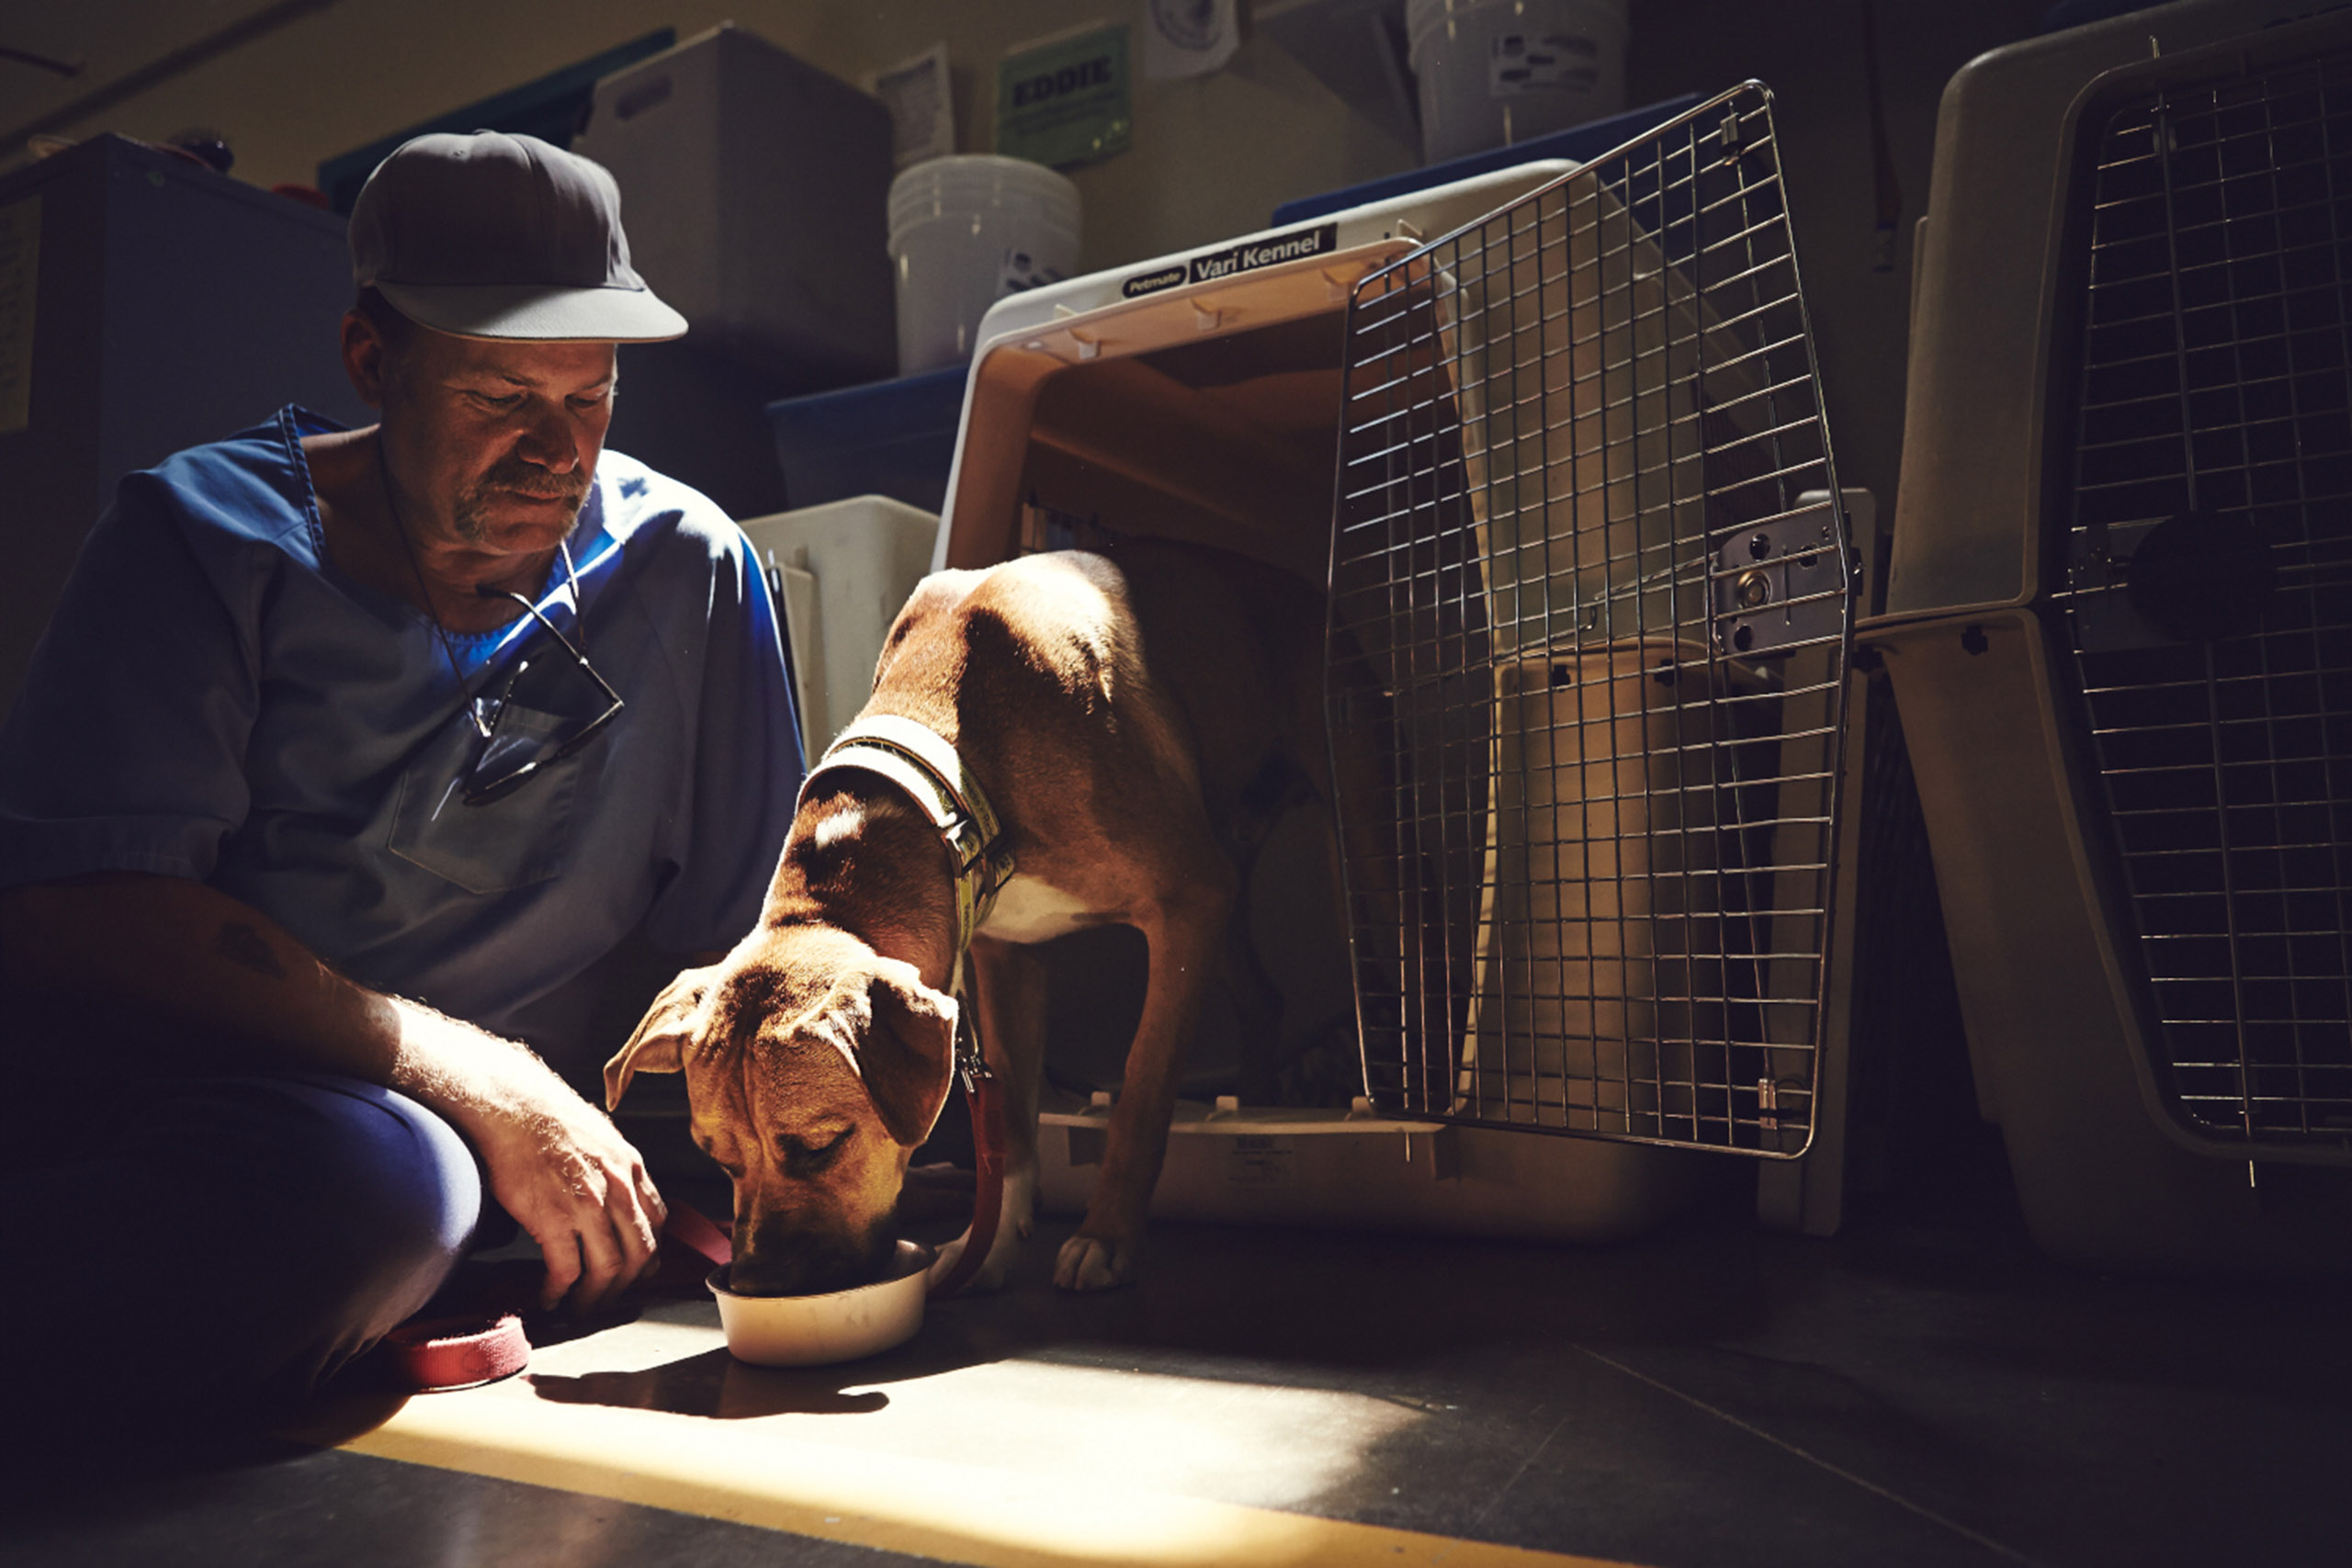 Inmate John feeding a dog named Rendell in his crate in the morning.